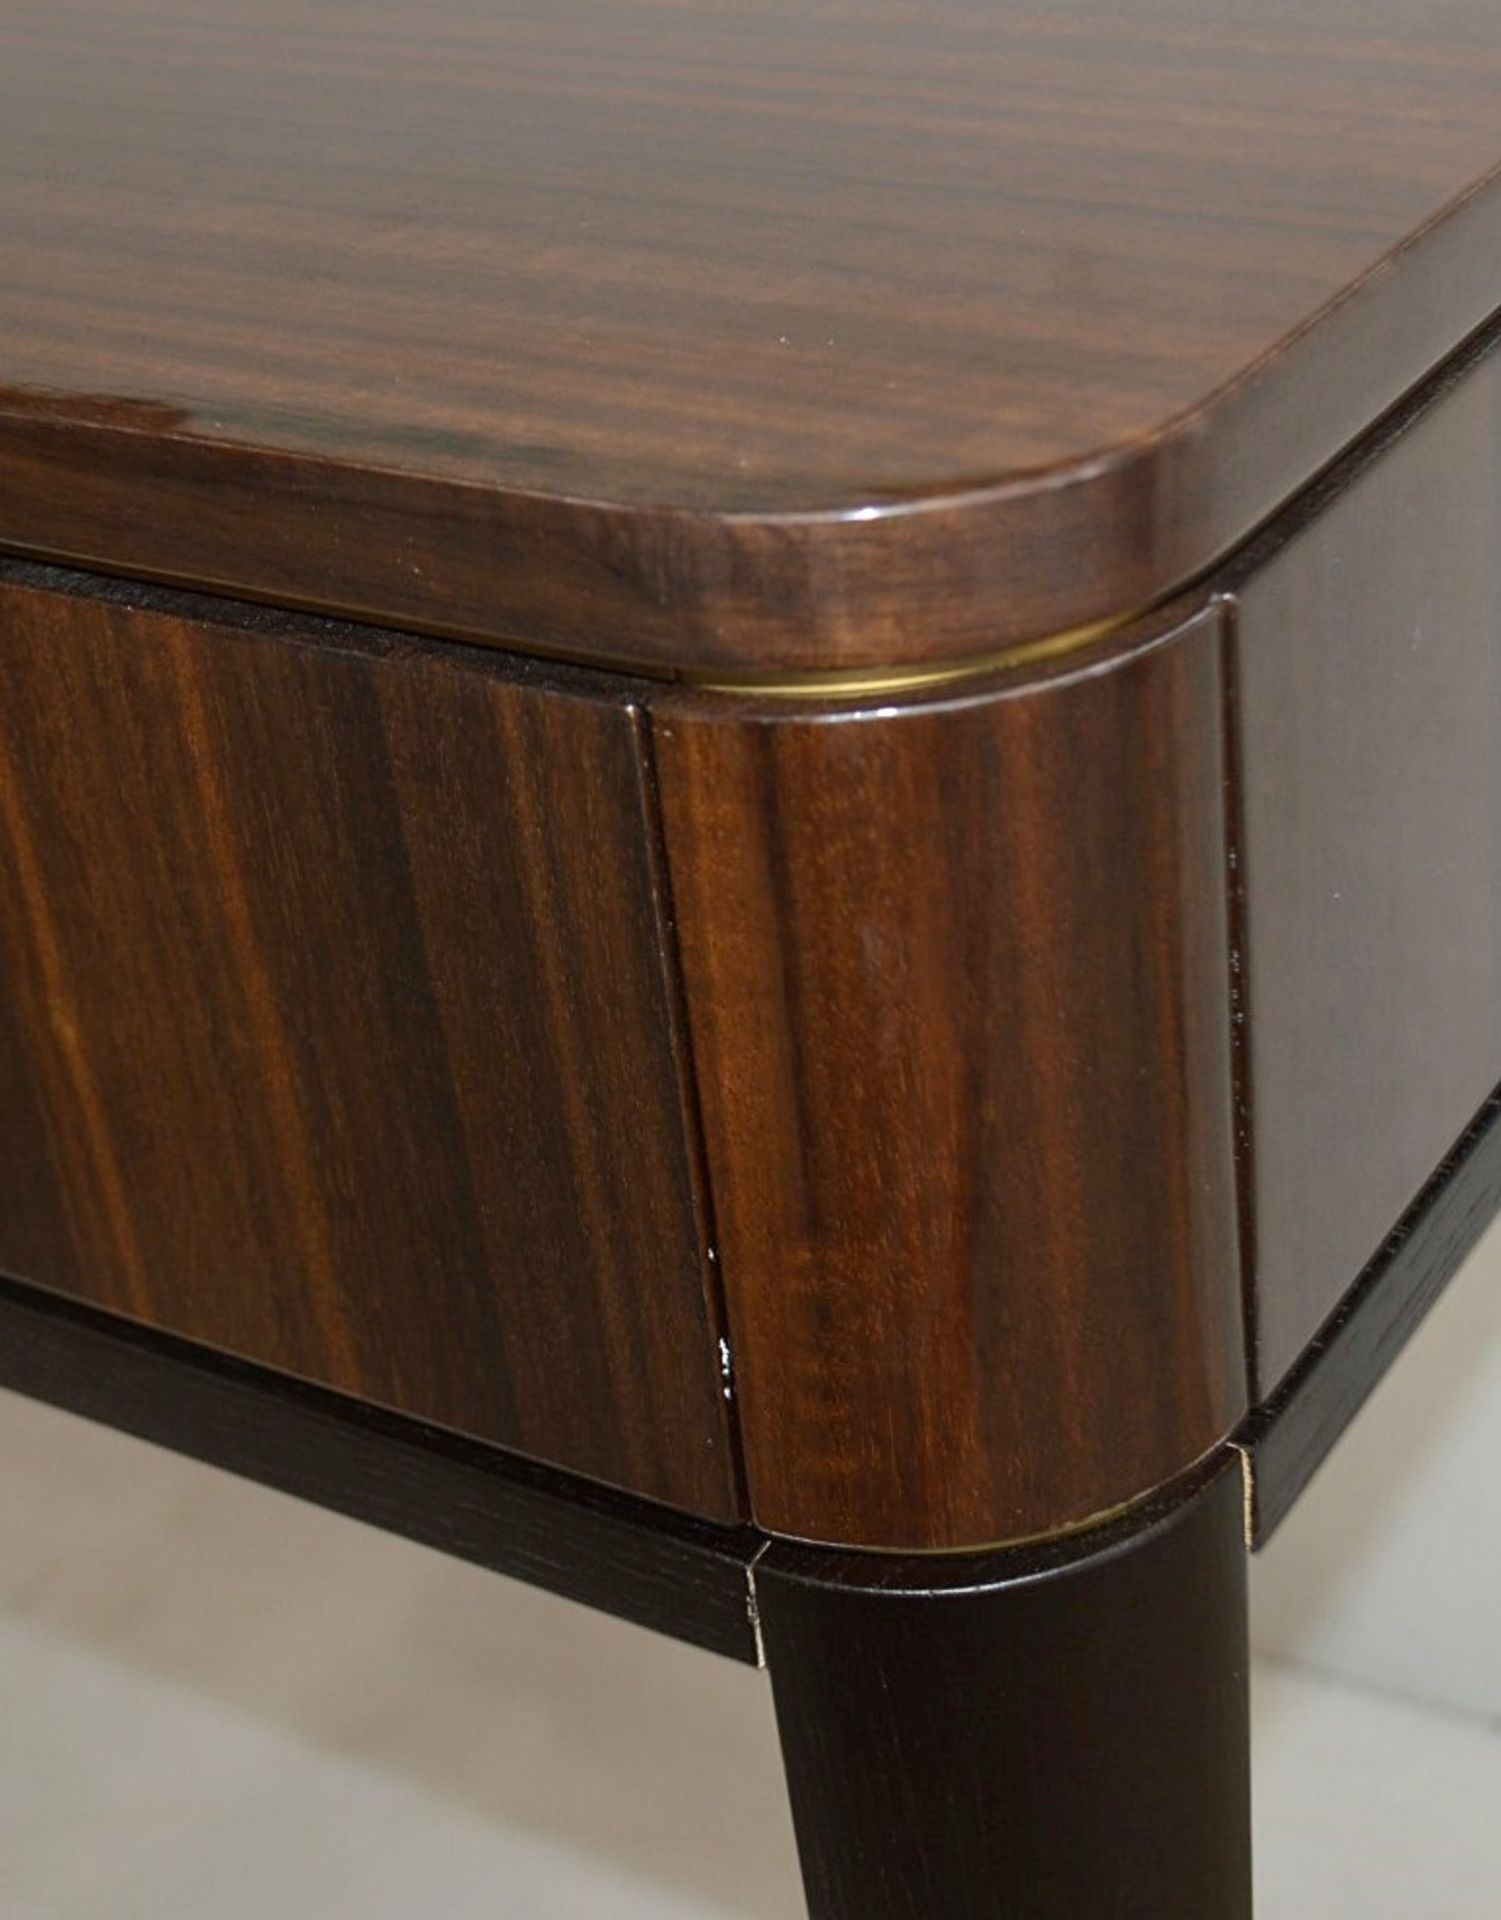 1 x FRATO 'Mandalay' Luxury Designer 2-Drawer Dresser Dressing Table In A Gloss Finish - RRP £4,300 - Image 2 of 17